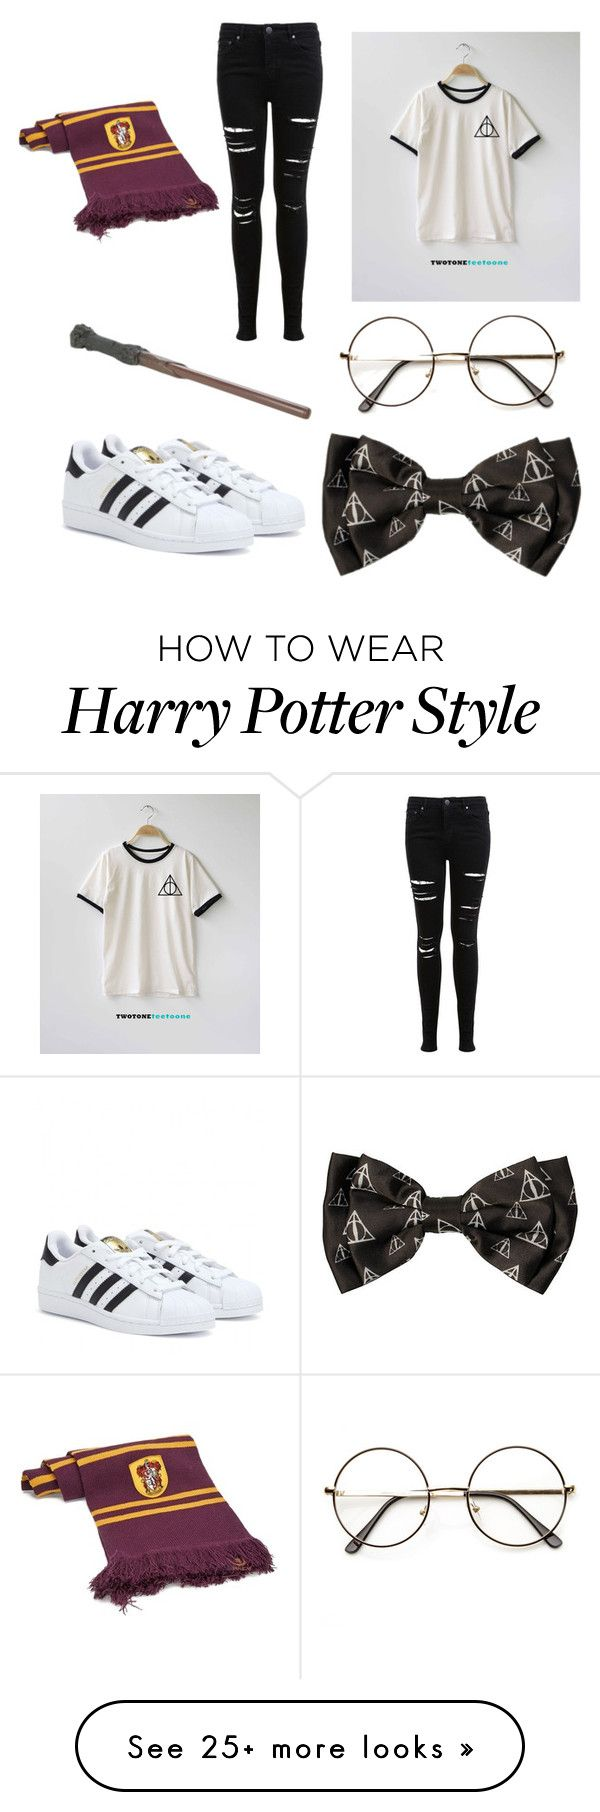 """Harry Potter"" by joleinlagendijk on Polyvore featuring Miss Selfridge, adidas and Elope"